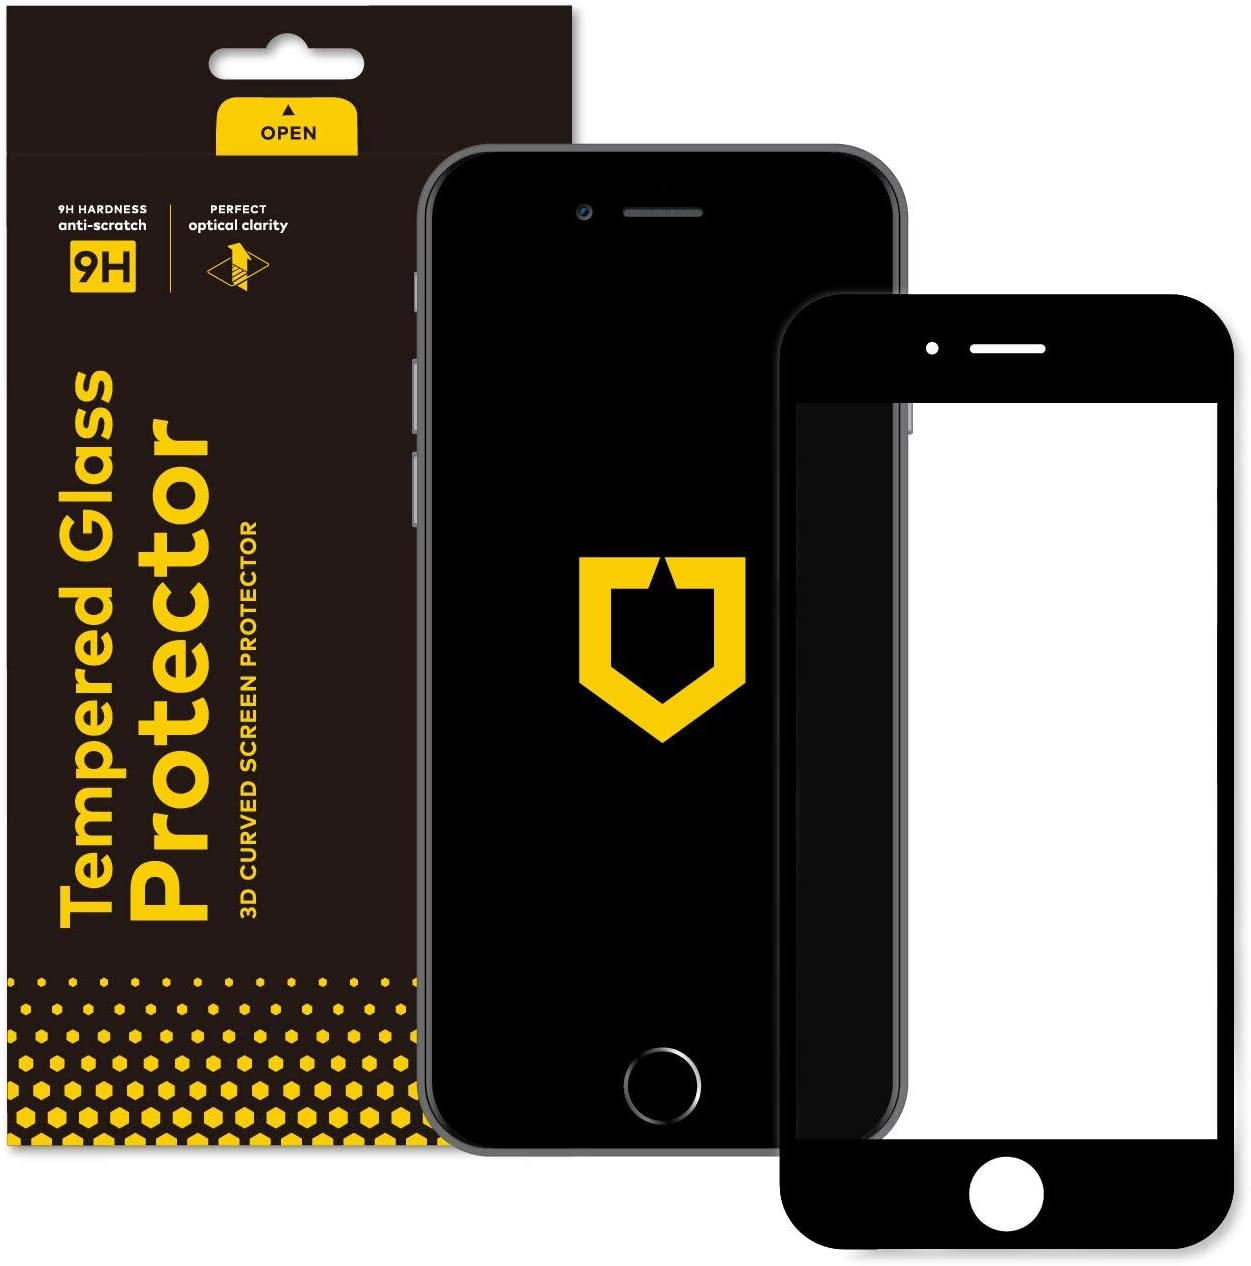 RhinoShield Screen Protector compatible with [iPhone 8 Plus/iPhone 7 Plus] | 9H 3D Curved Edge to Edge Tempered Glass - Full Coverage Clear and Scratch Resistant Screen Protection - Black